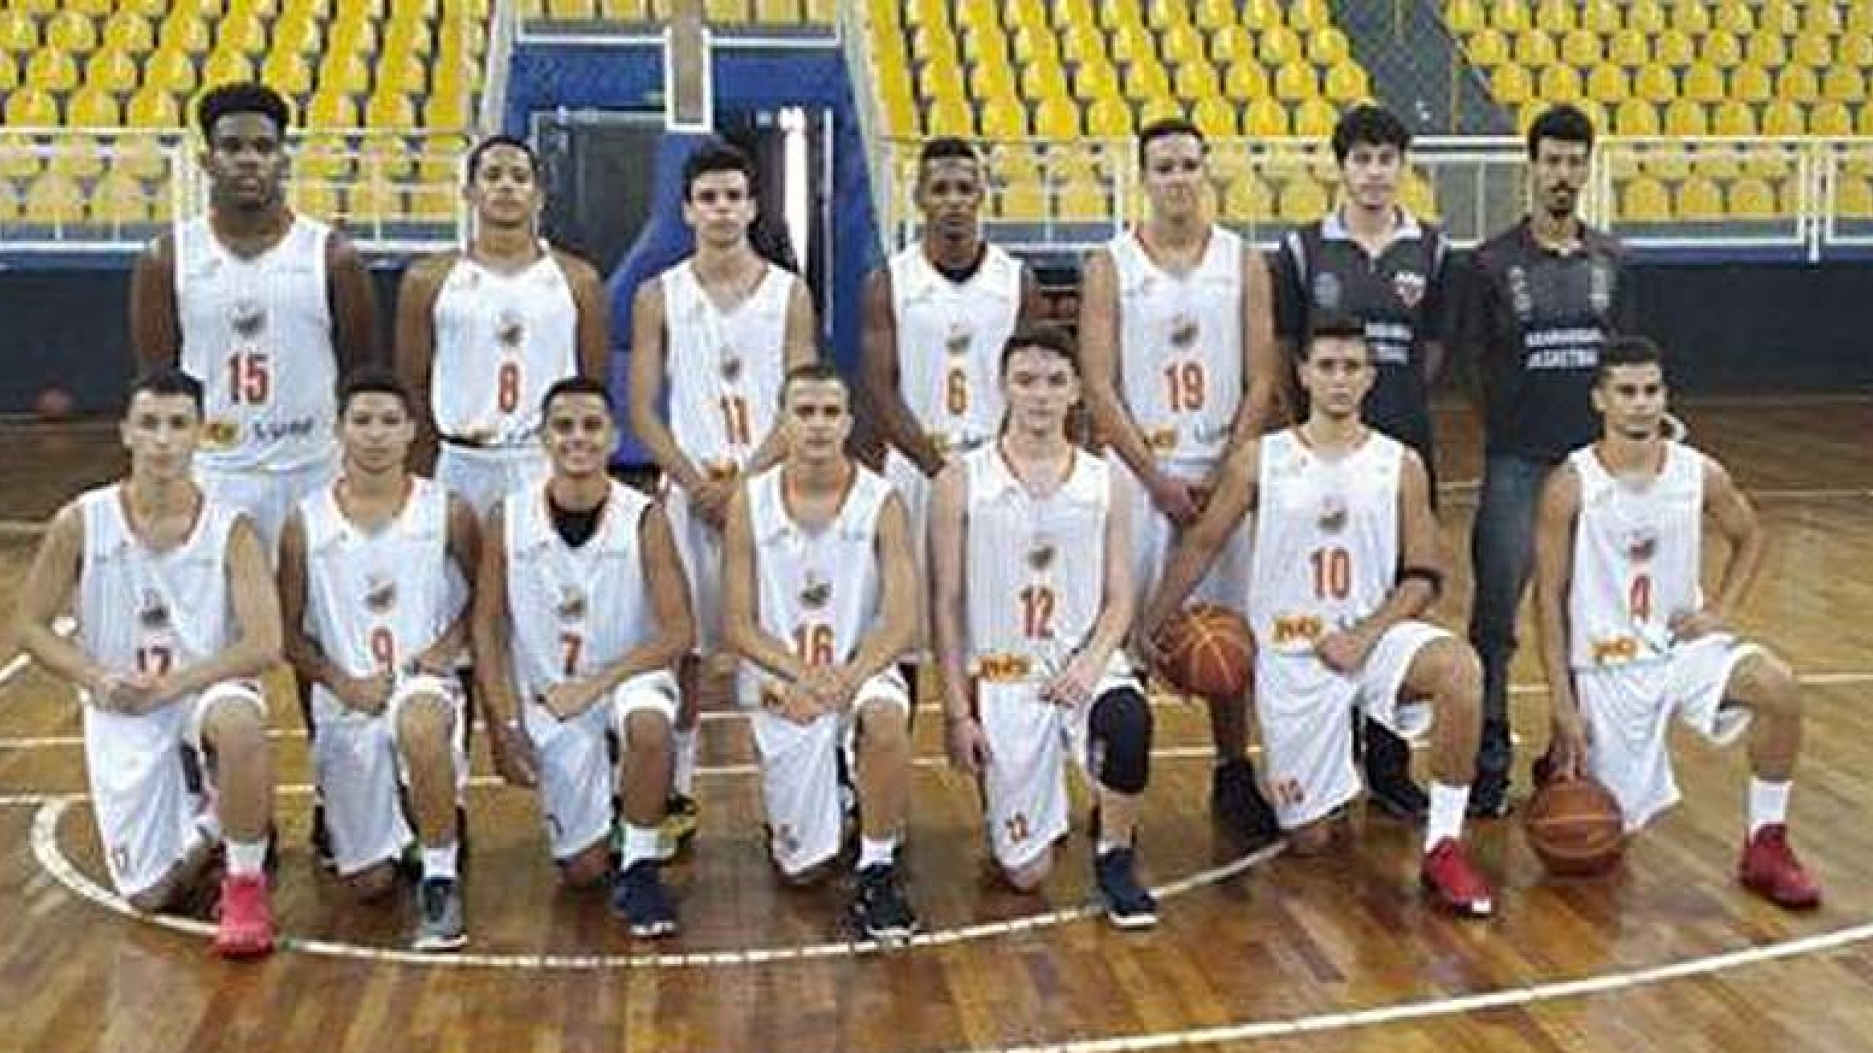 Garotos do basquete venceram no final de semana